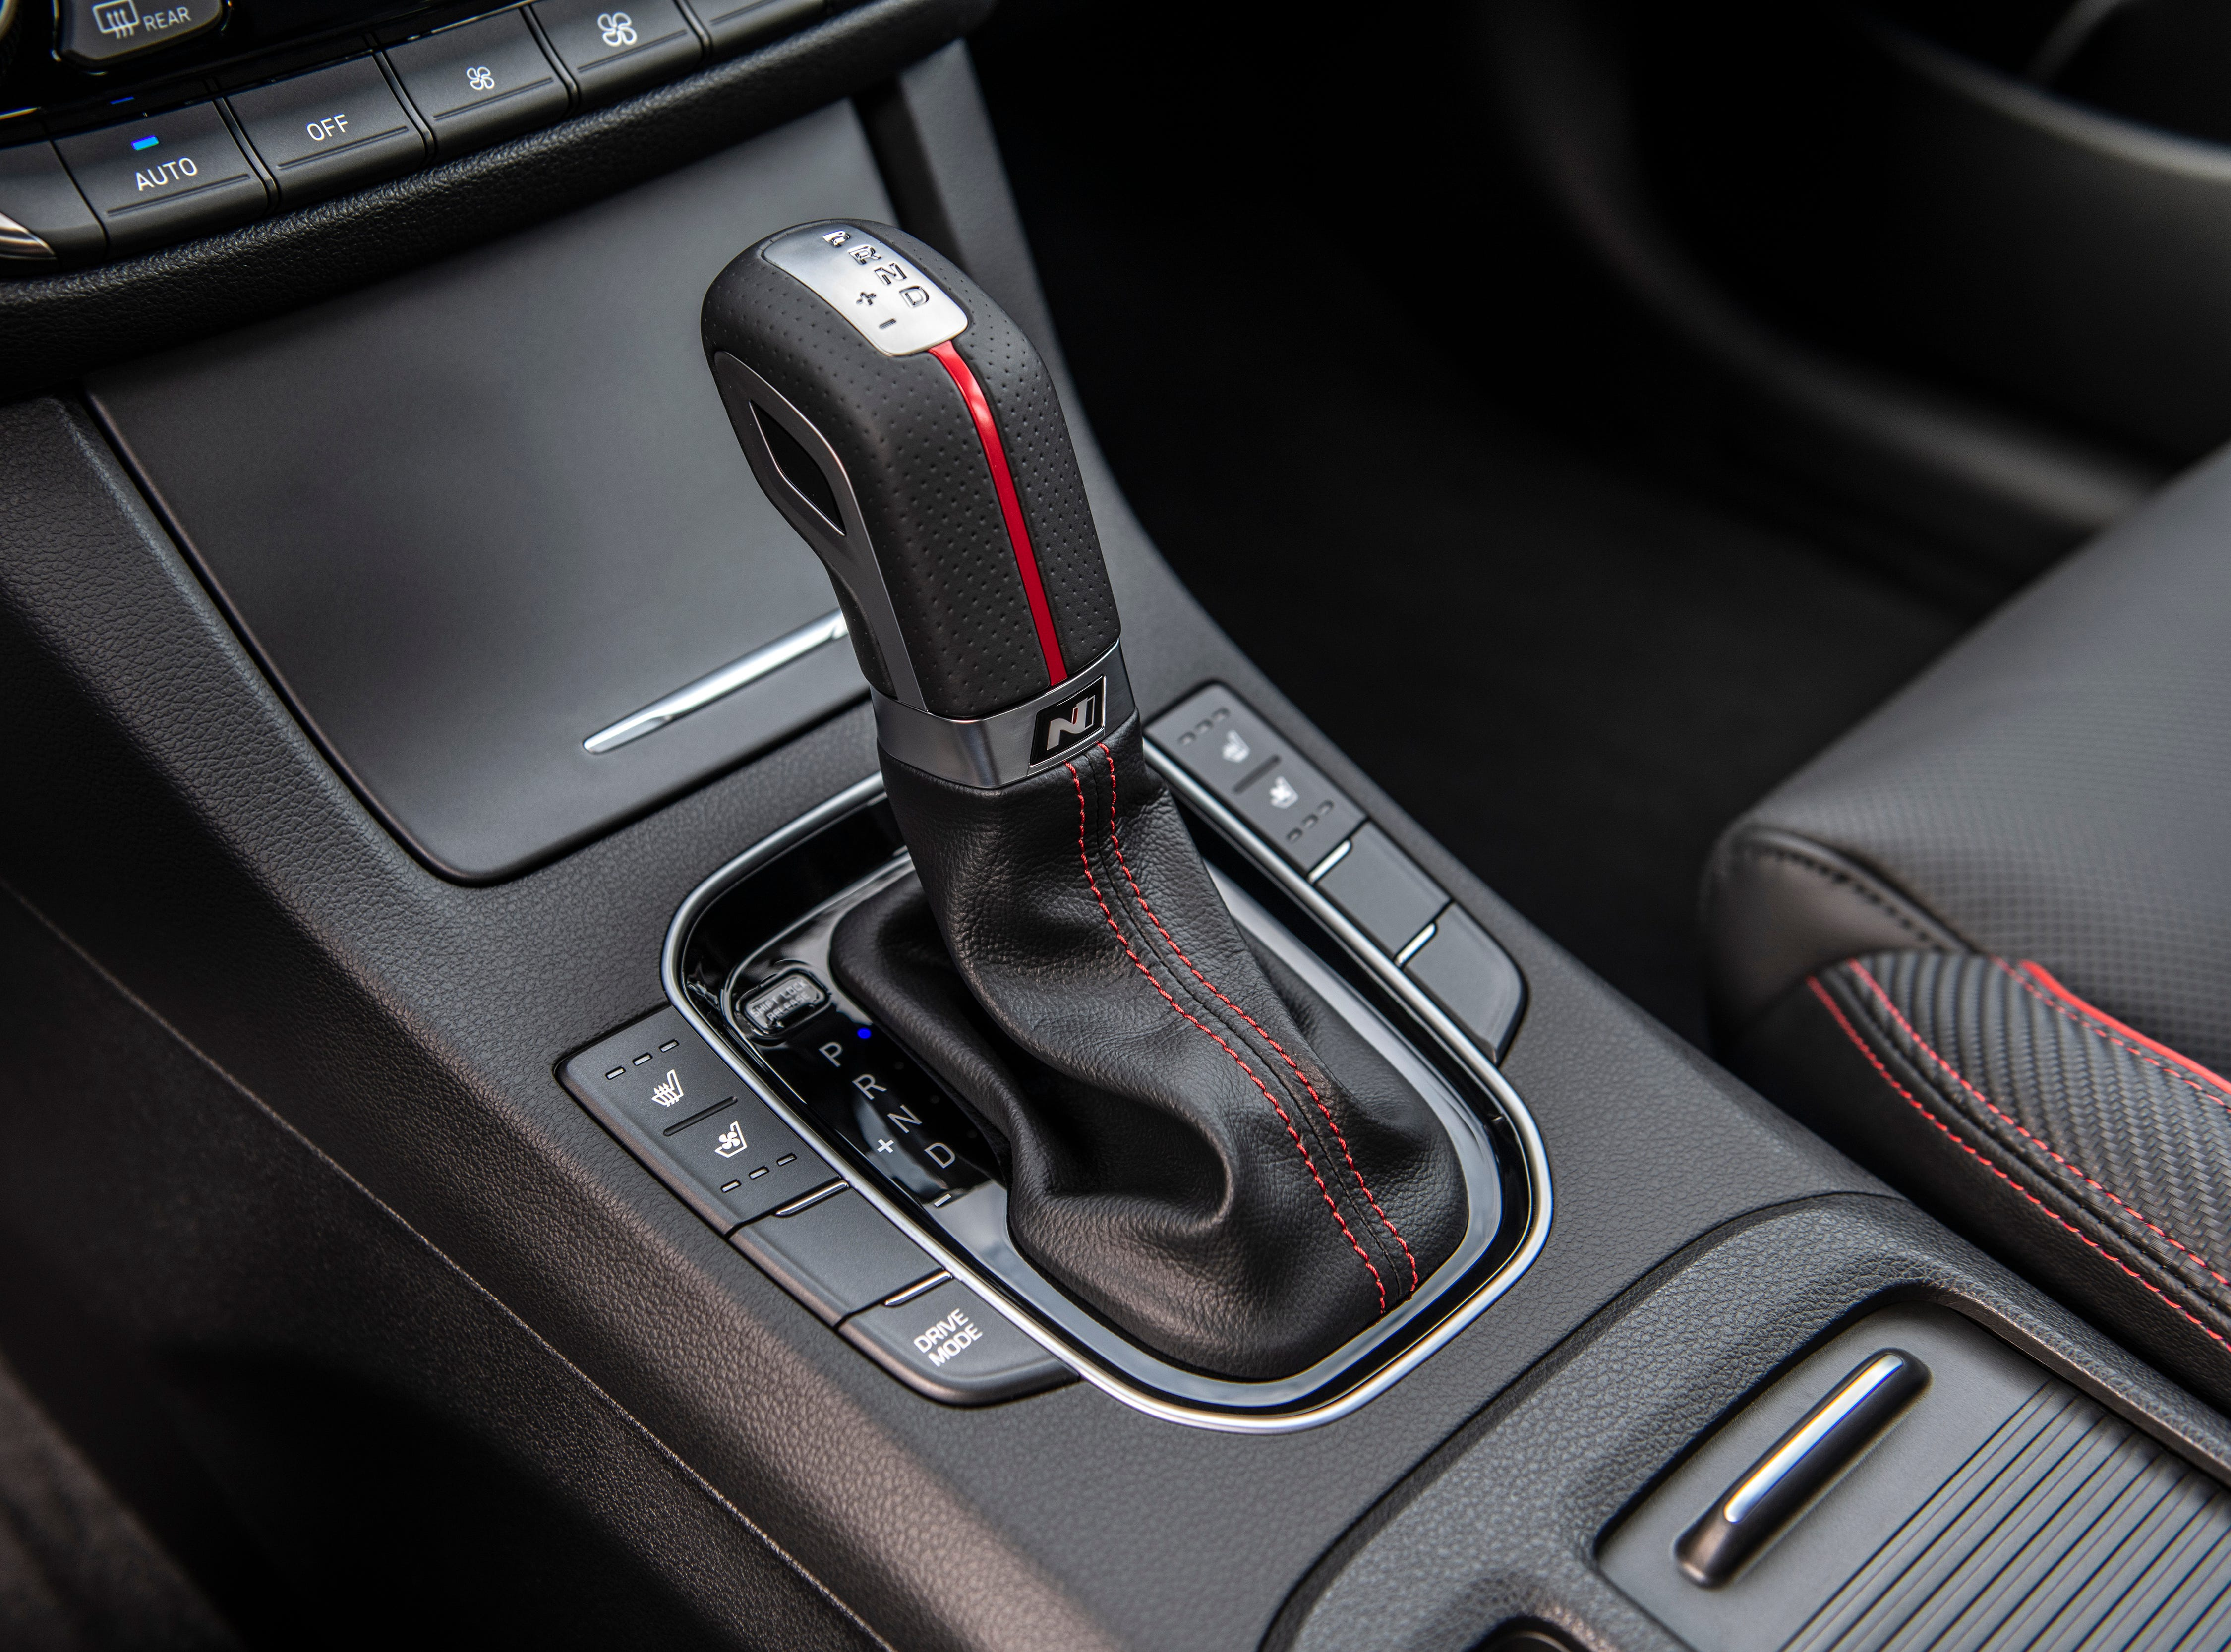 The Elantra GT N Line includes a 1.6-liter turbocharged-GDI engine with six-speed manual transmission or an optional seven-speed DCT with larger steering wheel mounted paddle shifters. This drivetrain produces 201 horsepower and 195 lb.-ft. torque to meet performance and fuel efficiency needs.